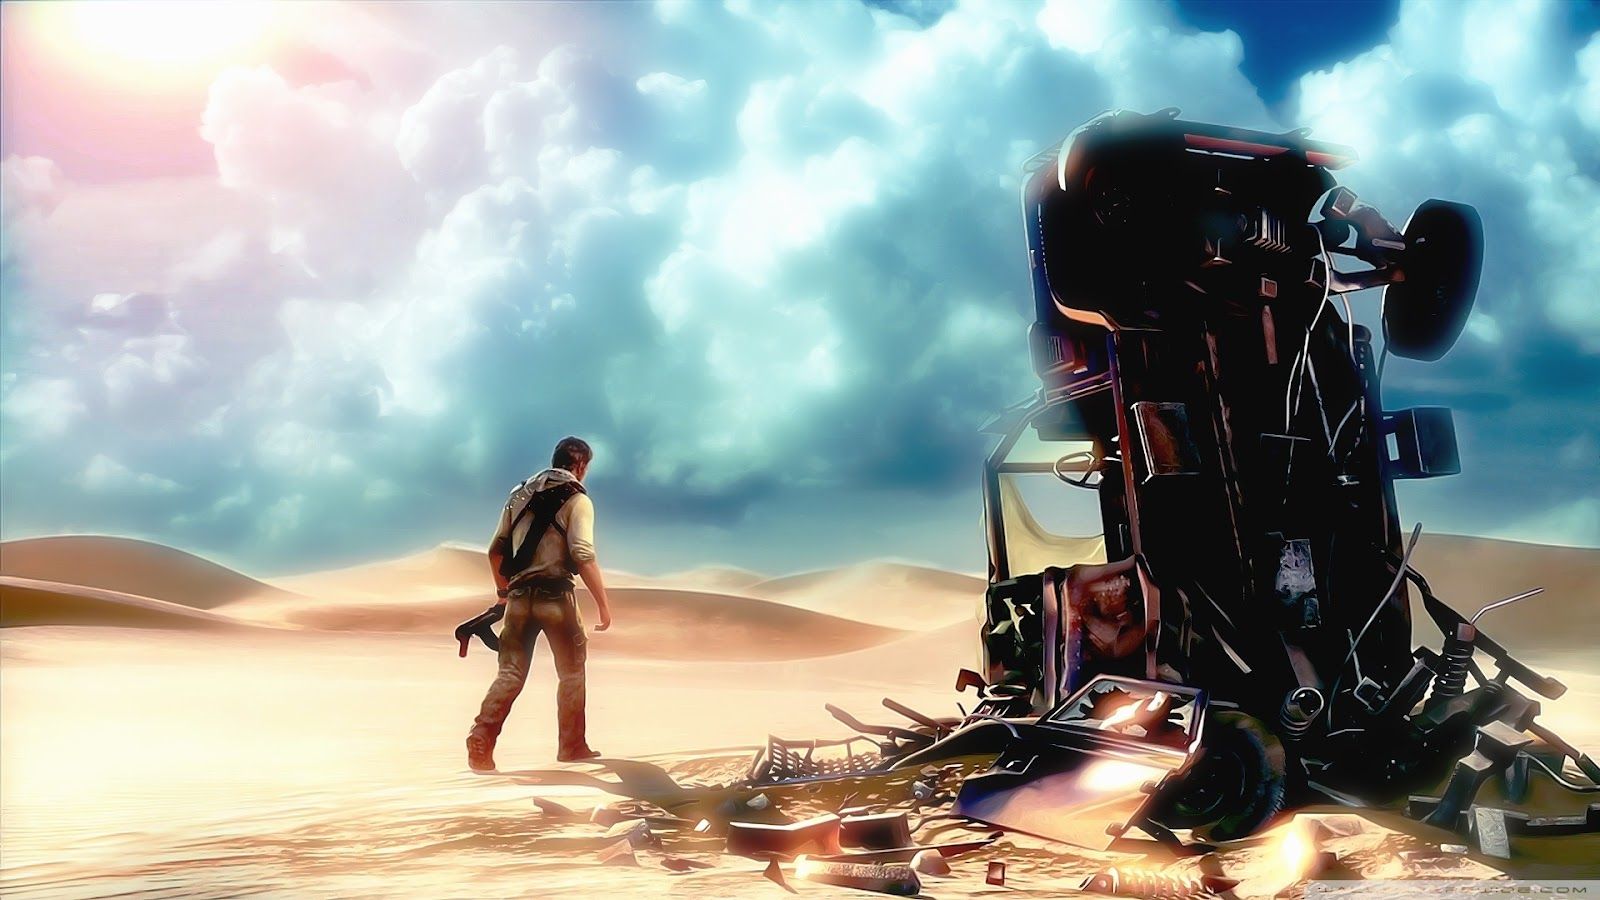 all new pix1: Wallpaper Uncharted 3 Hd Uncharted 3 Drakes Deception Wallpaper